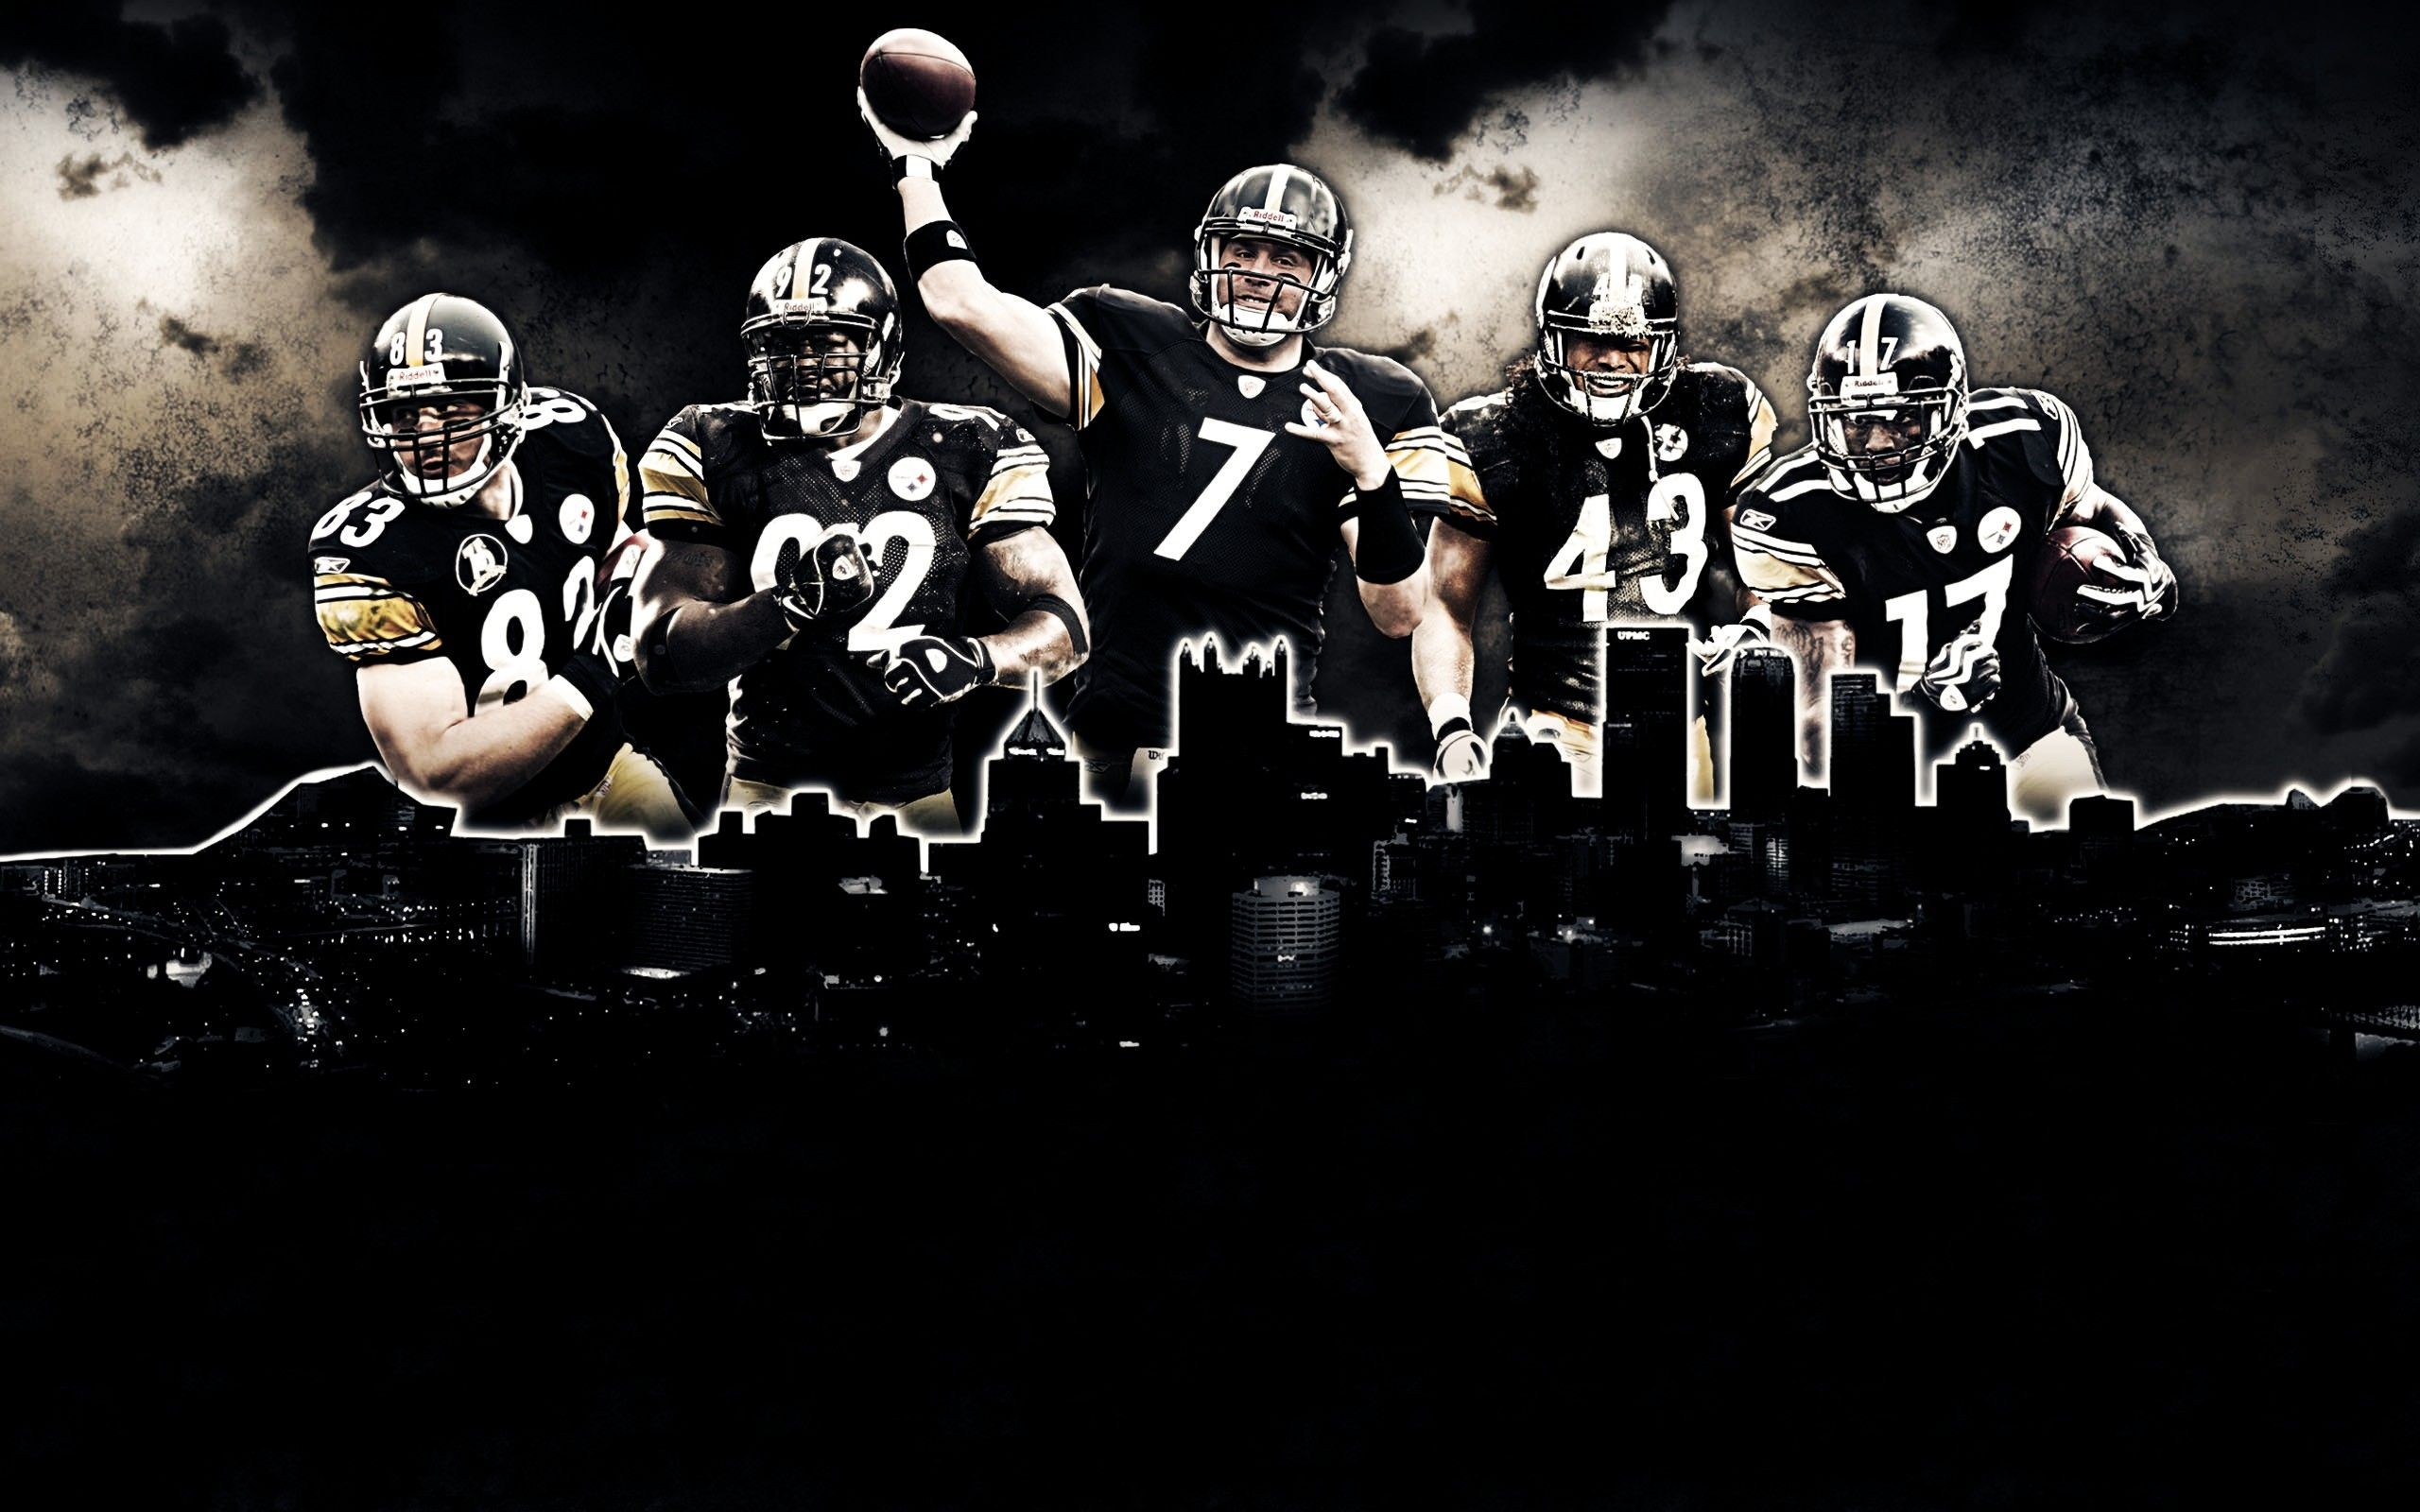 Pittsburgh Steelers Wallpaper 1 Download Free Full HD Backgrounds